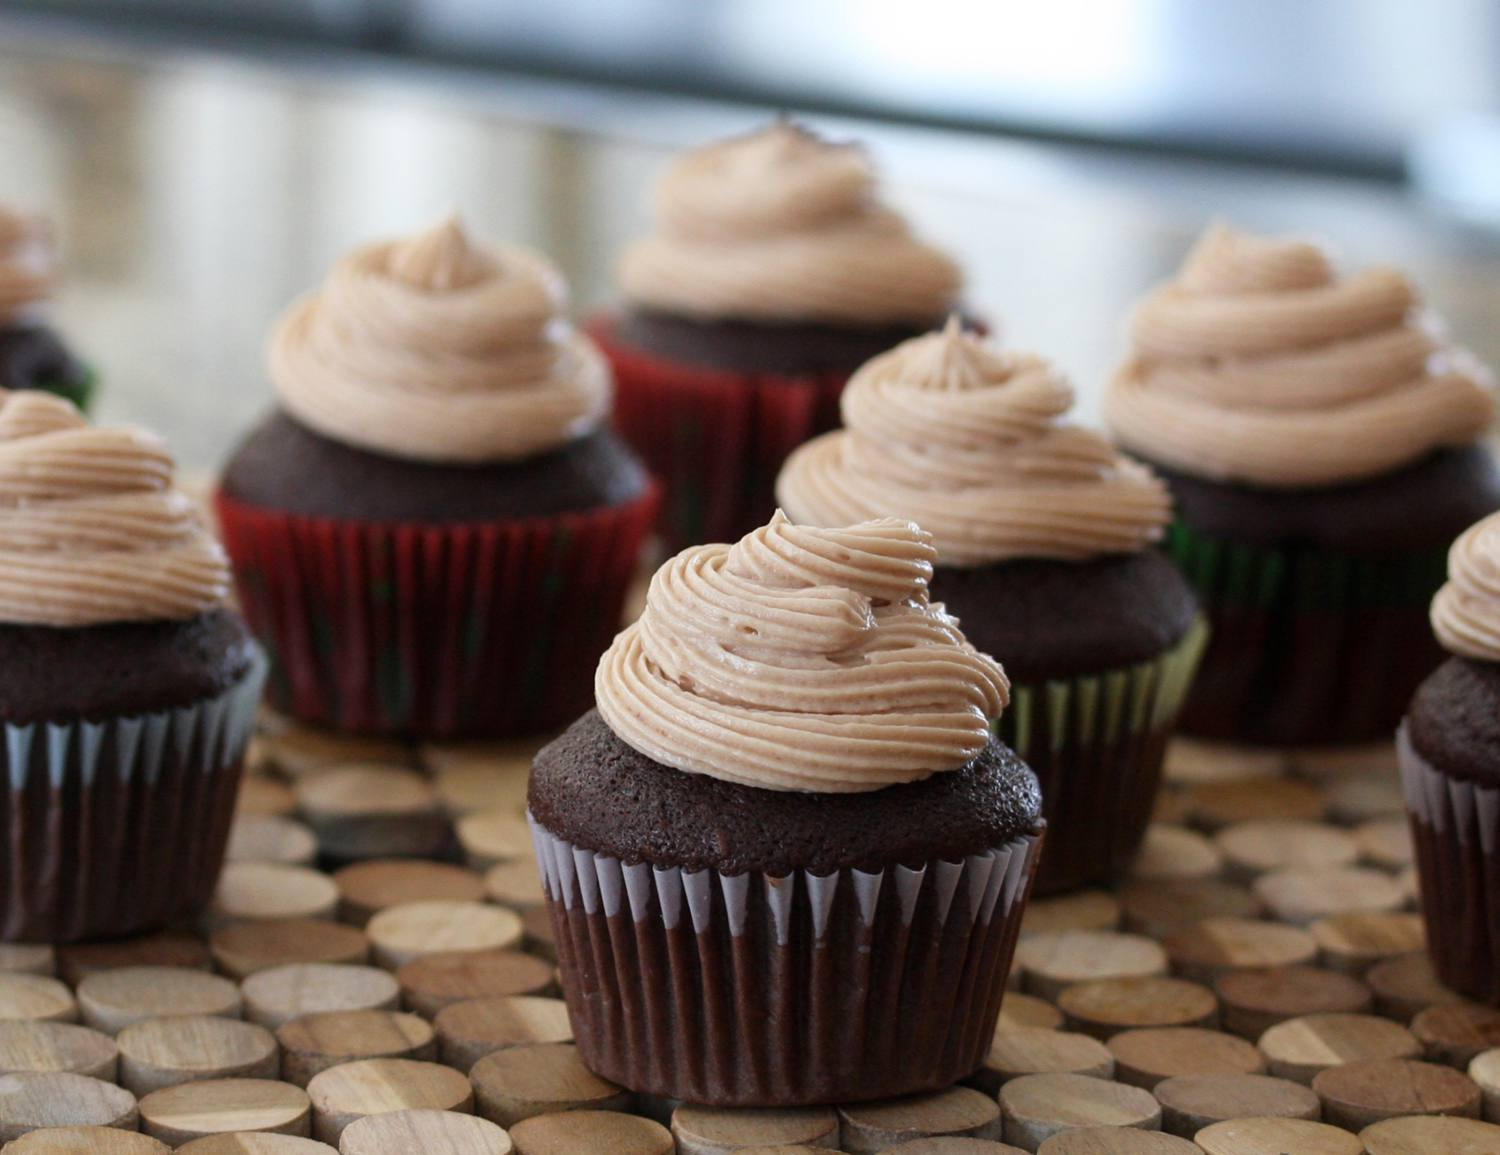 Chocolate malted cupcakes